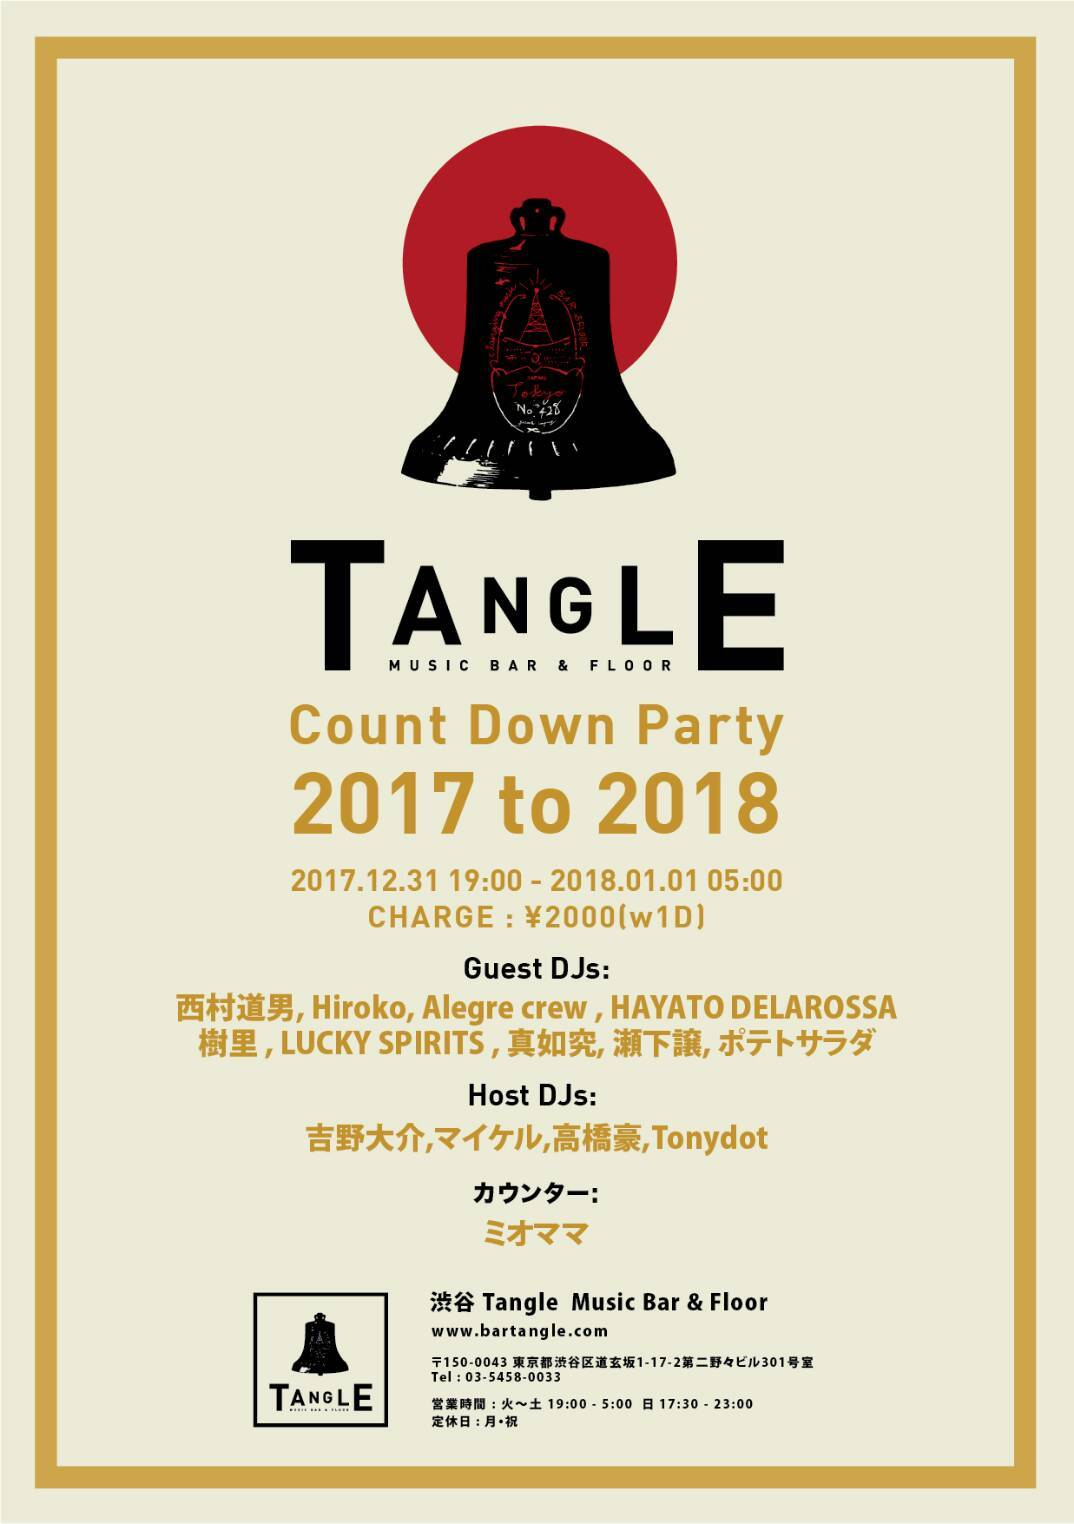 12/31 (SUN) 「Tangle Count Down Party 2017 to 2018」@渋谷 Tangle_e0153779_21003359.jpg